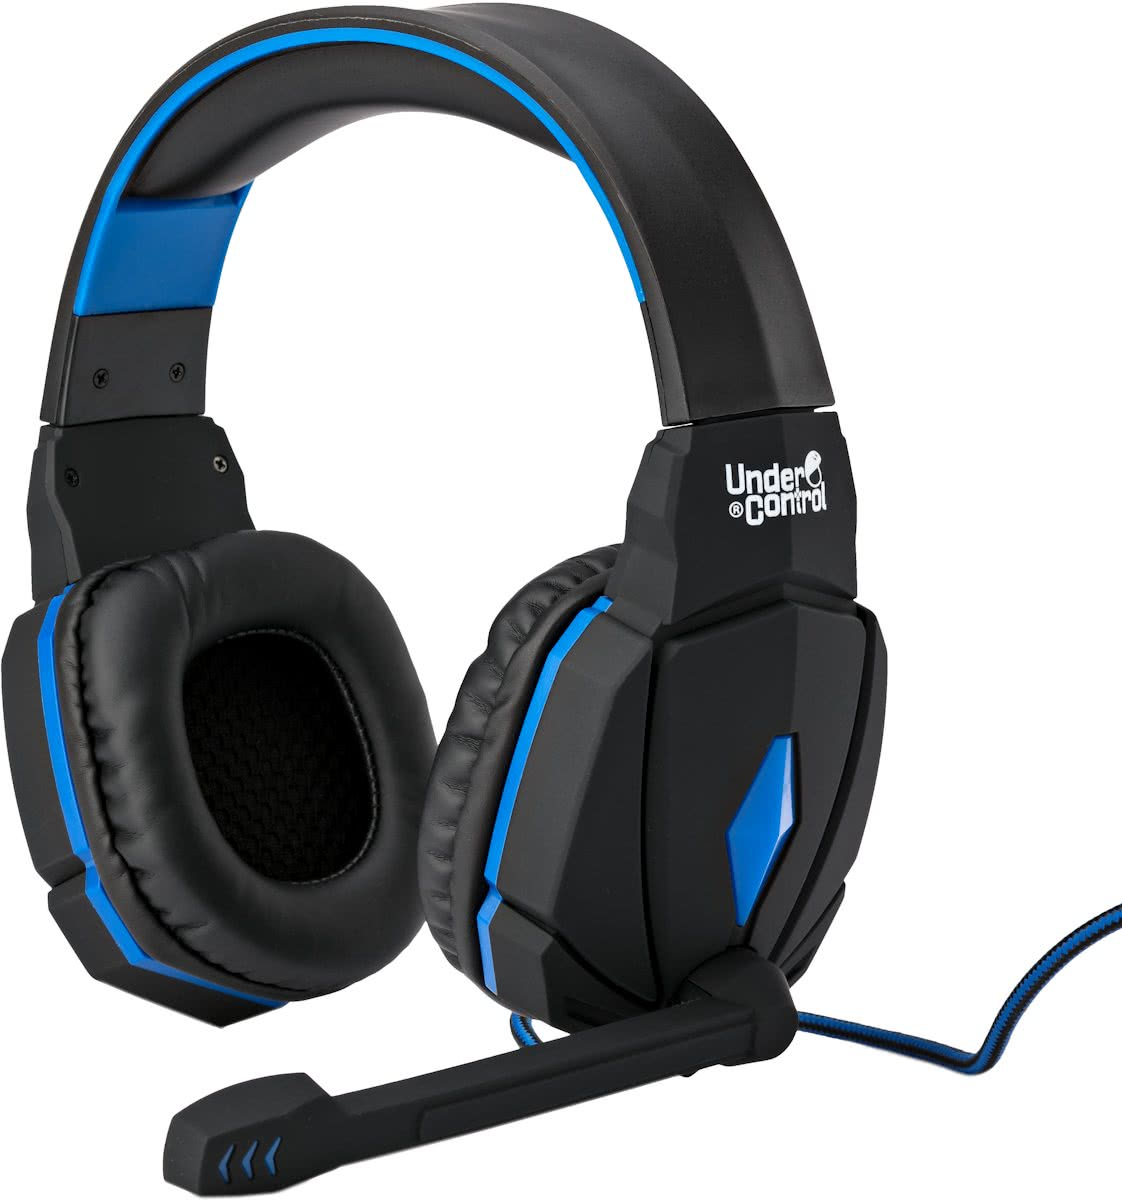 Under Control - Gaming Headset - Voor de Playstation 4 - Bedraad